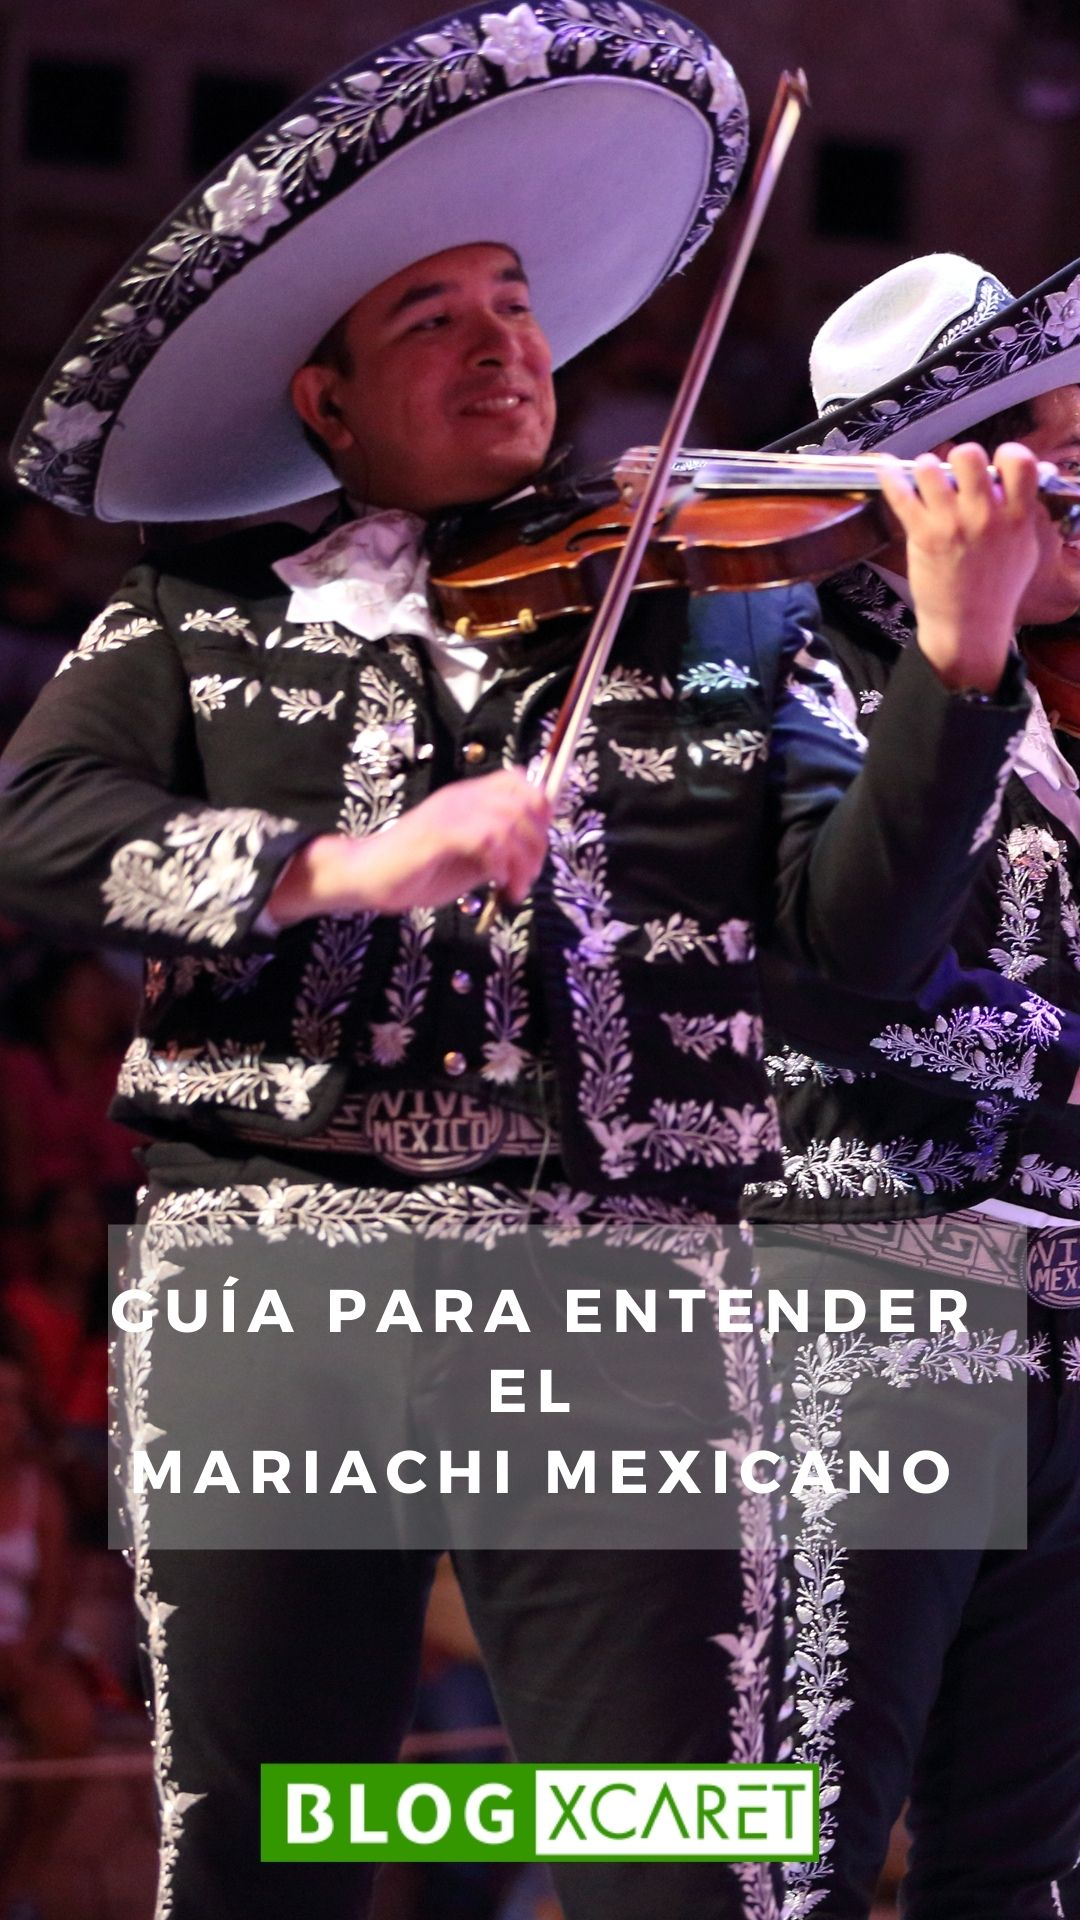 Guide to understanding the Mexican mariachi